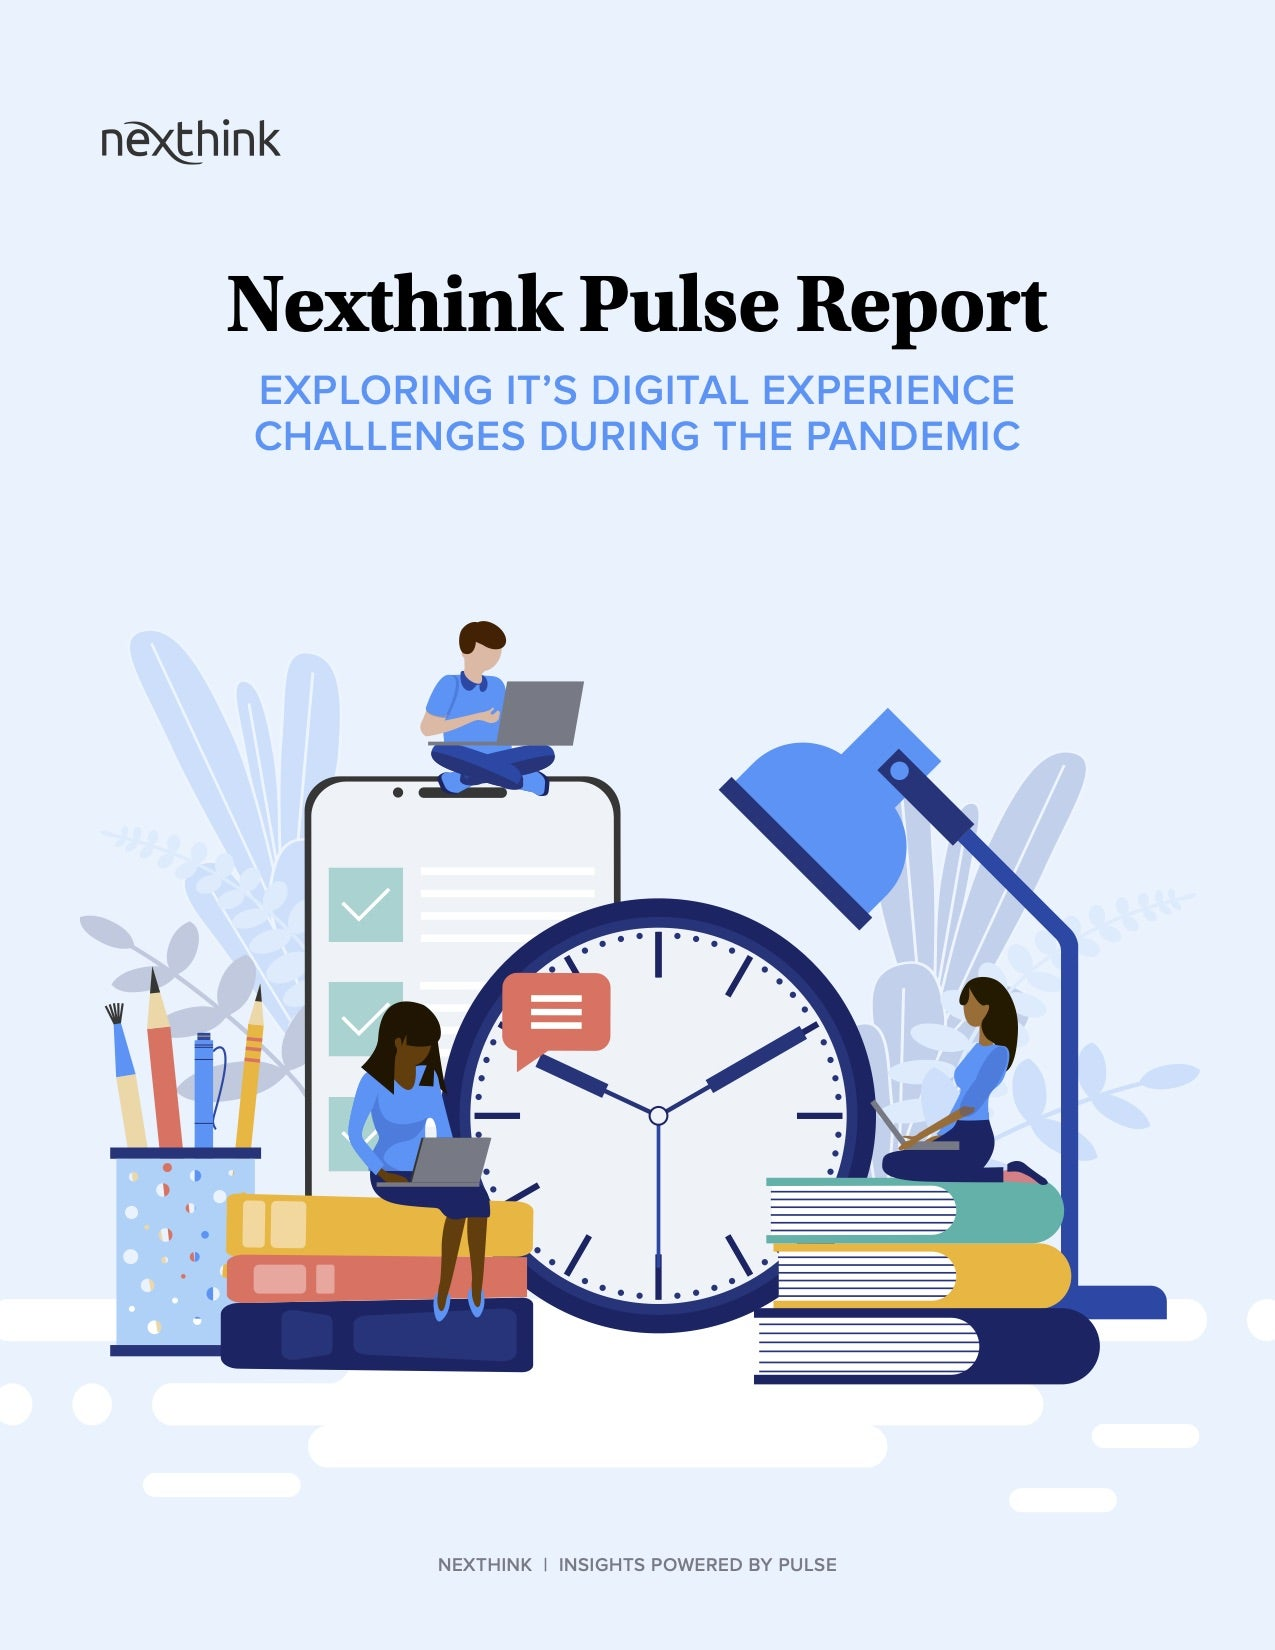 The Nexthink Pulse Report